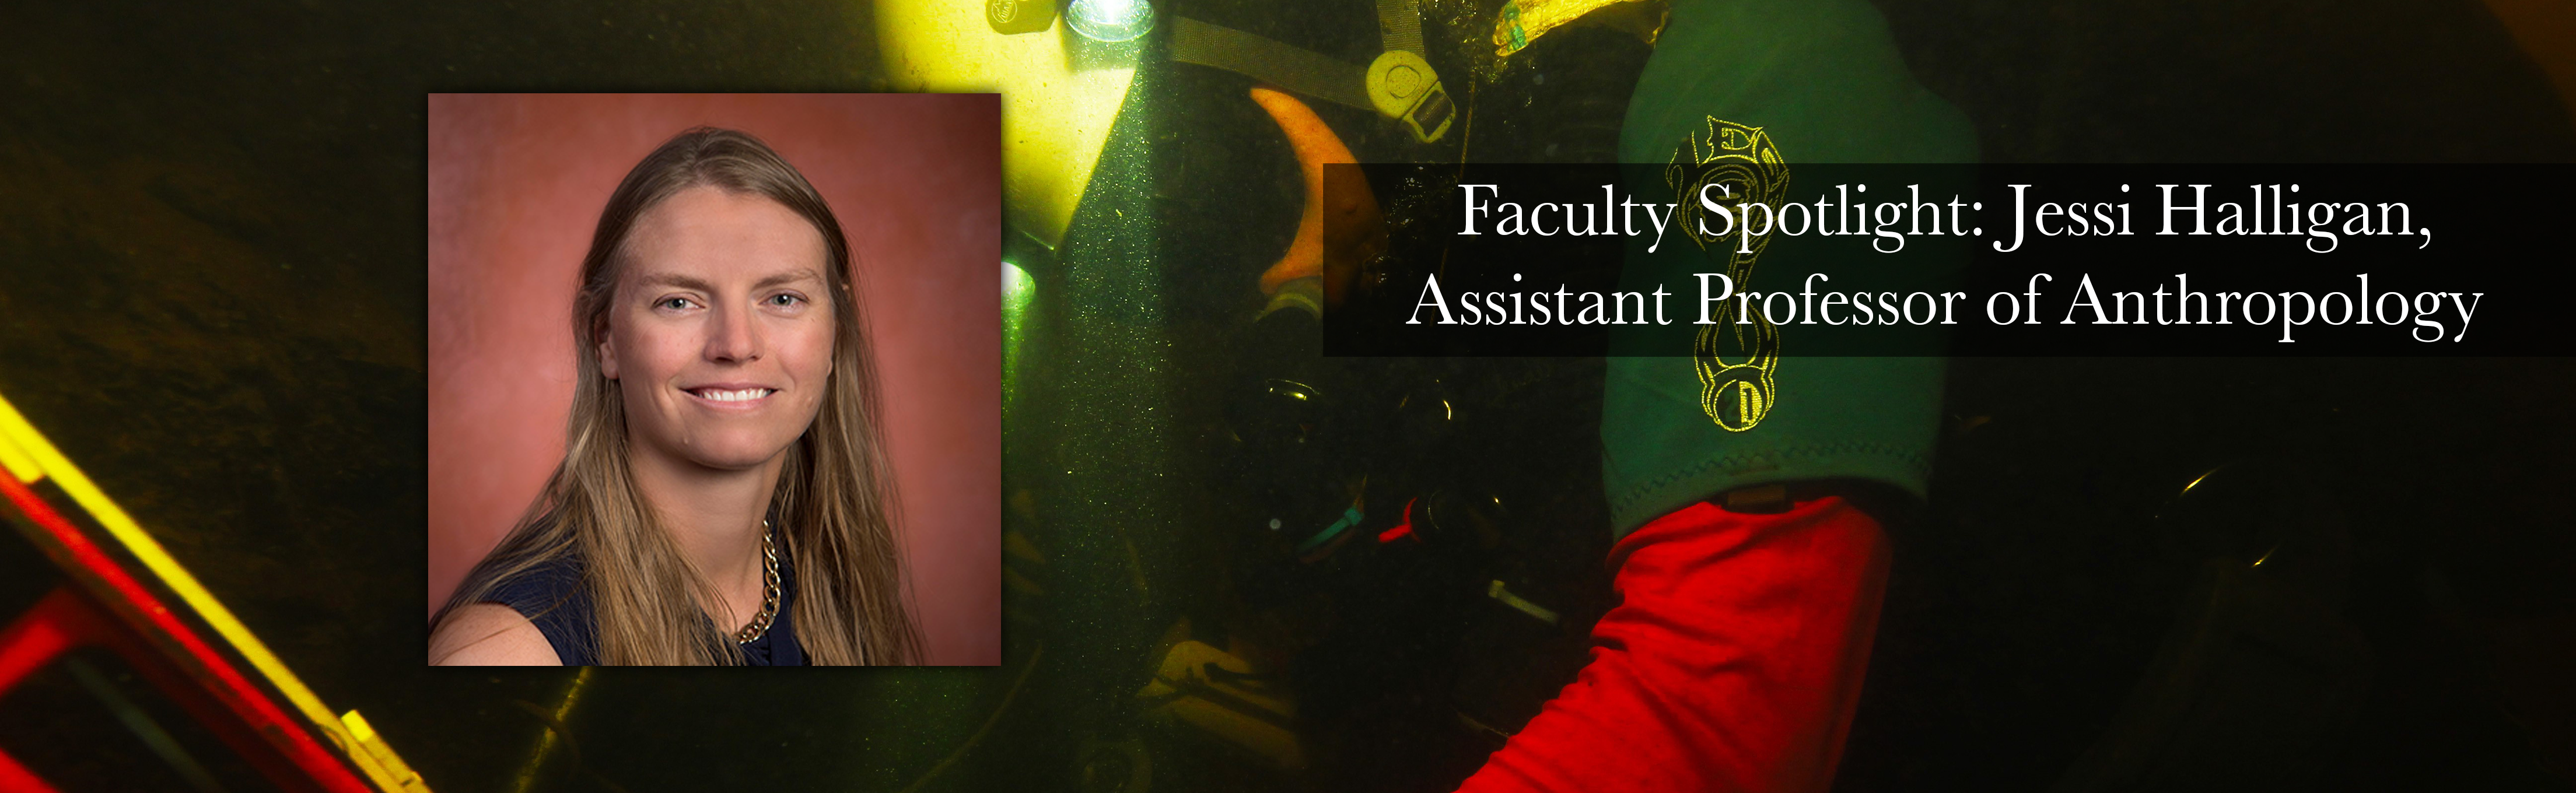 Faculty Spotlight: Jessi Halligan, Assistant Professor of Anthropology